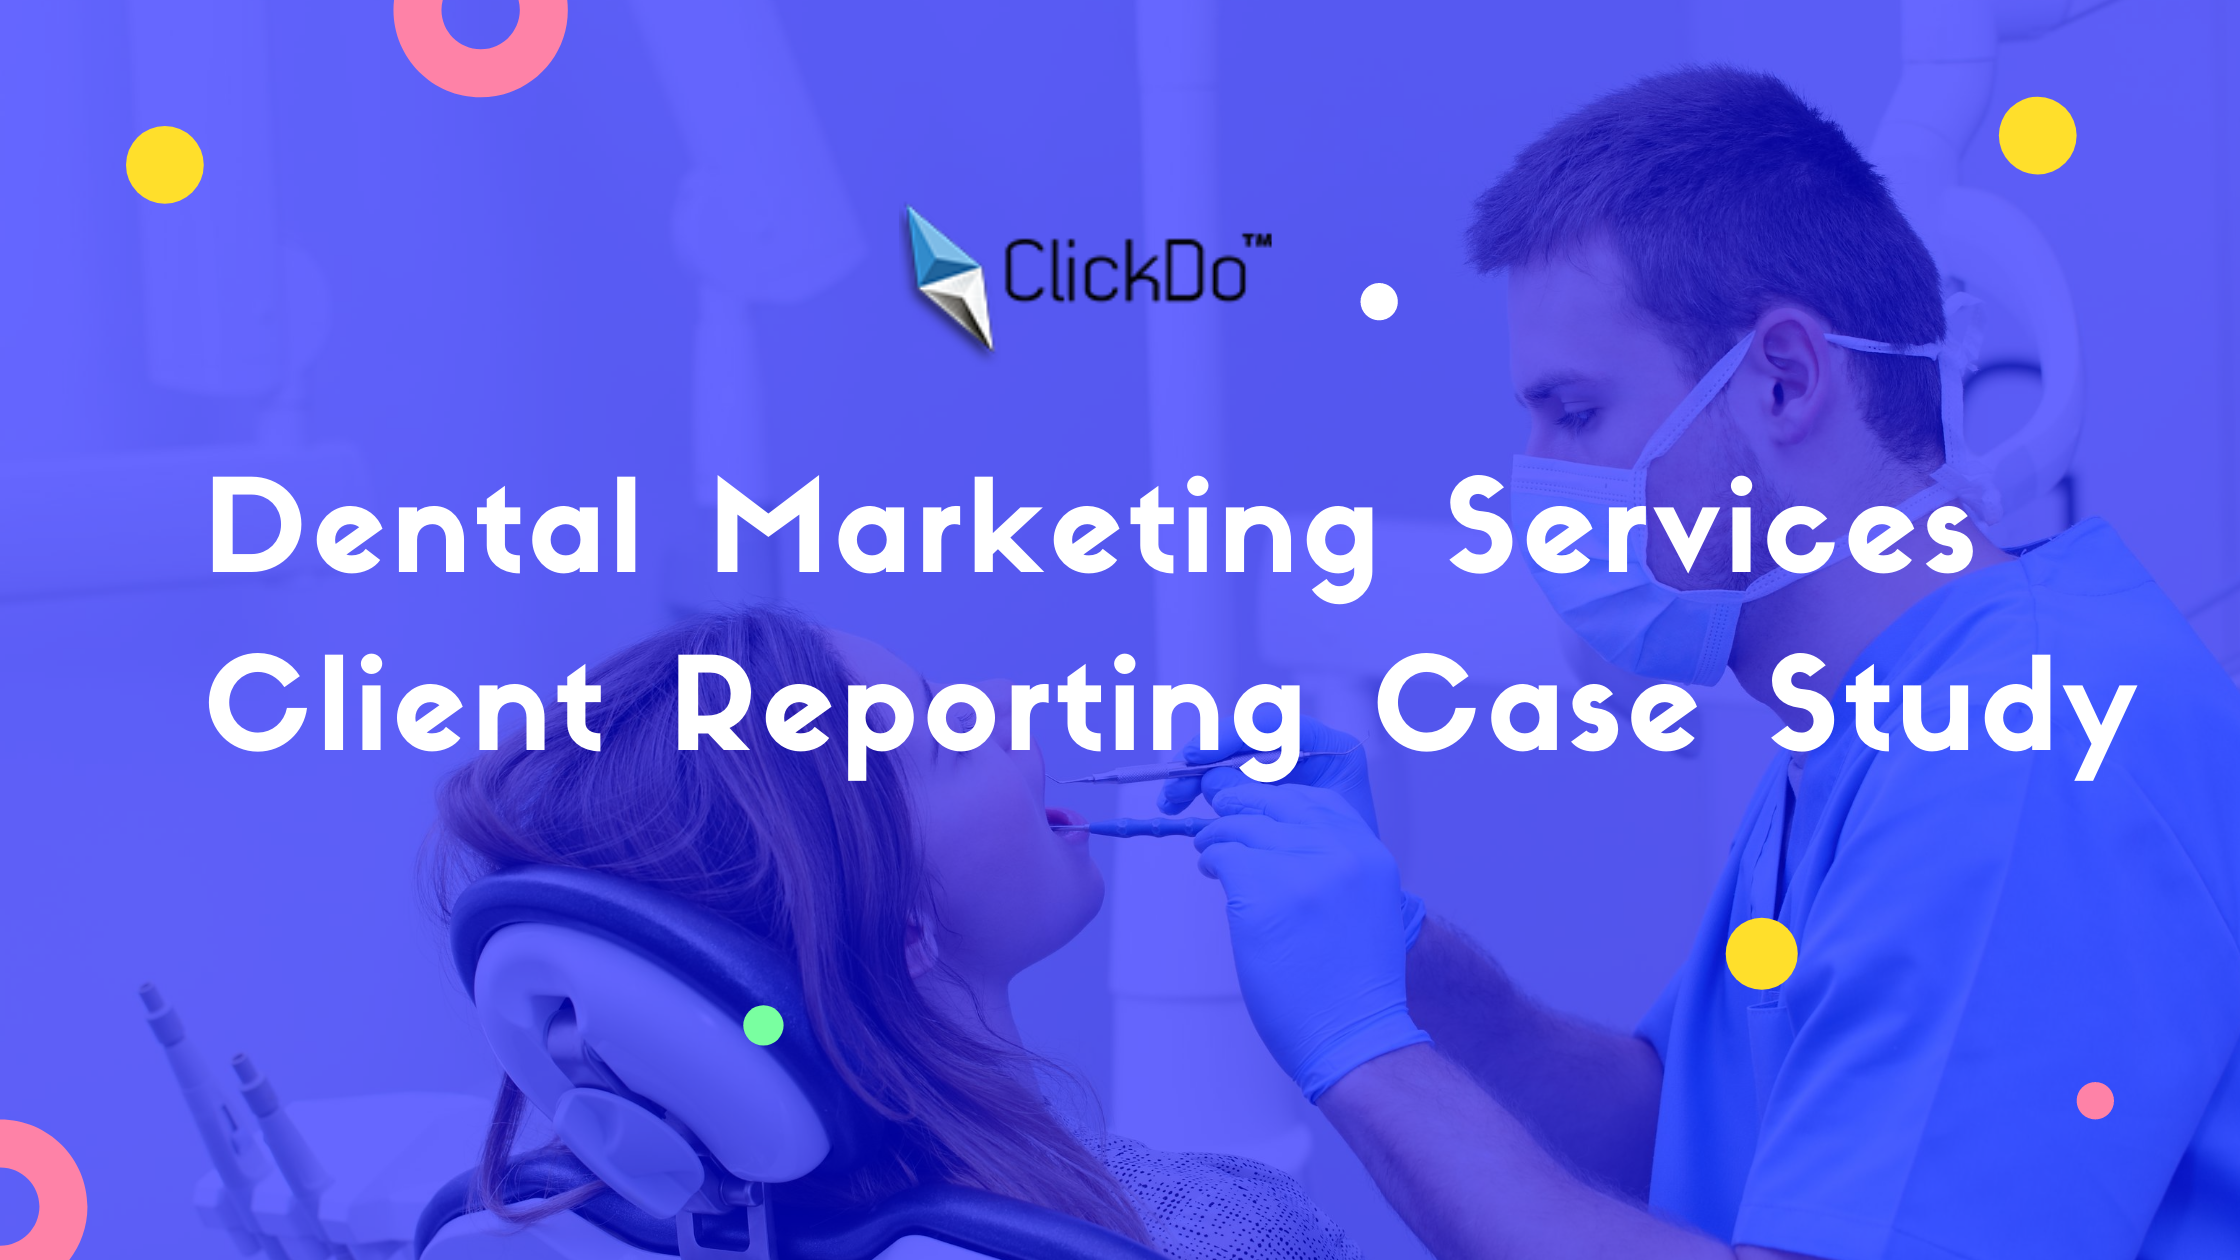 Dental Marketing Services Client Reporting Case Study